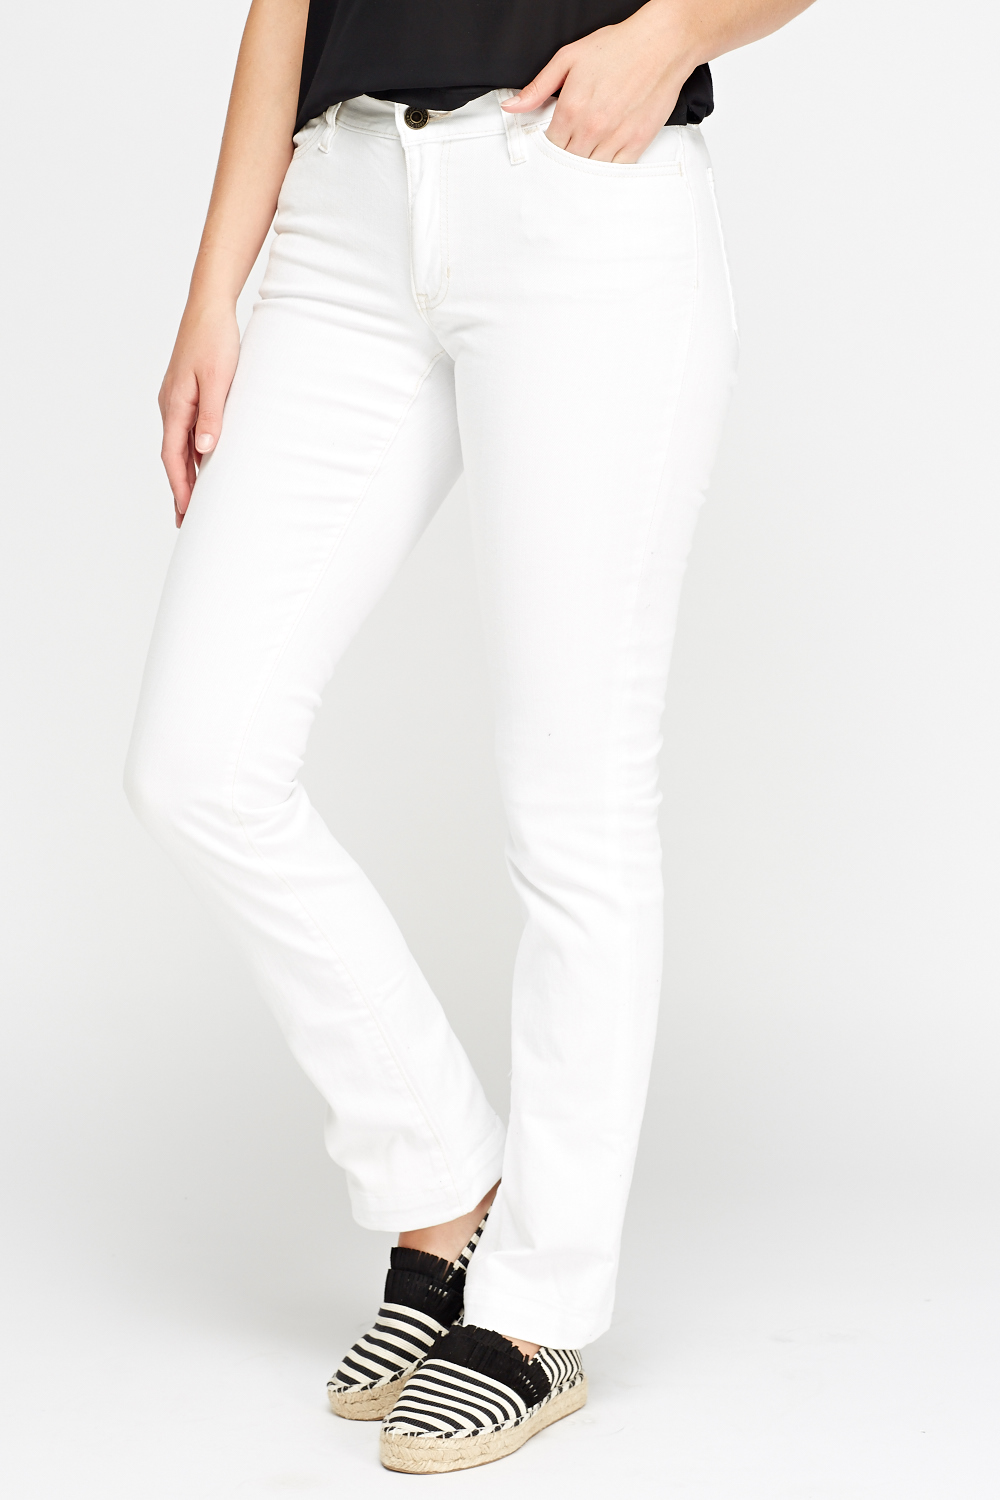 Enjoy free shipping and easy returns every day at Kohl's. Find great deals on Womens Straight Leg Jeans at Kohl's today!